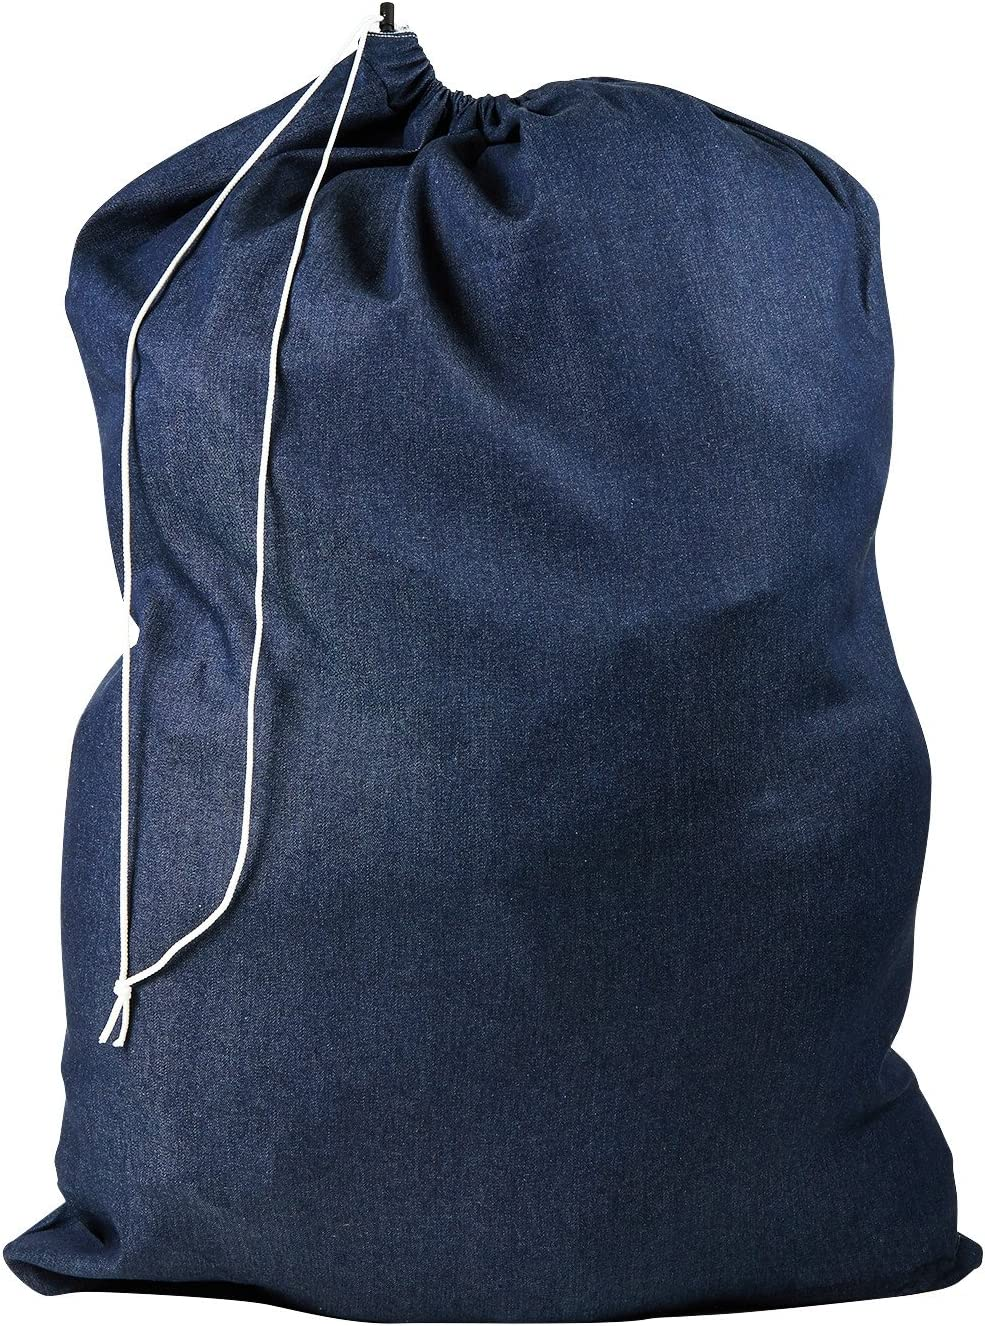 Nylon Laundry Bag - Locking Drawstring Closure and Machine Washable. These Large Bags Will Fit a Laundry Basket or Hamper and Strong Enough to Carry up to Three Loads of Clothes. (Denim)